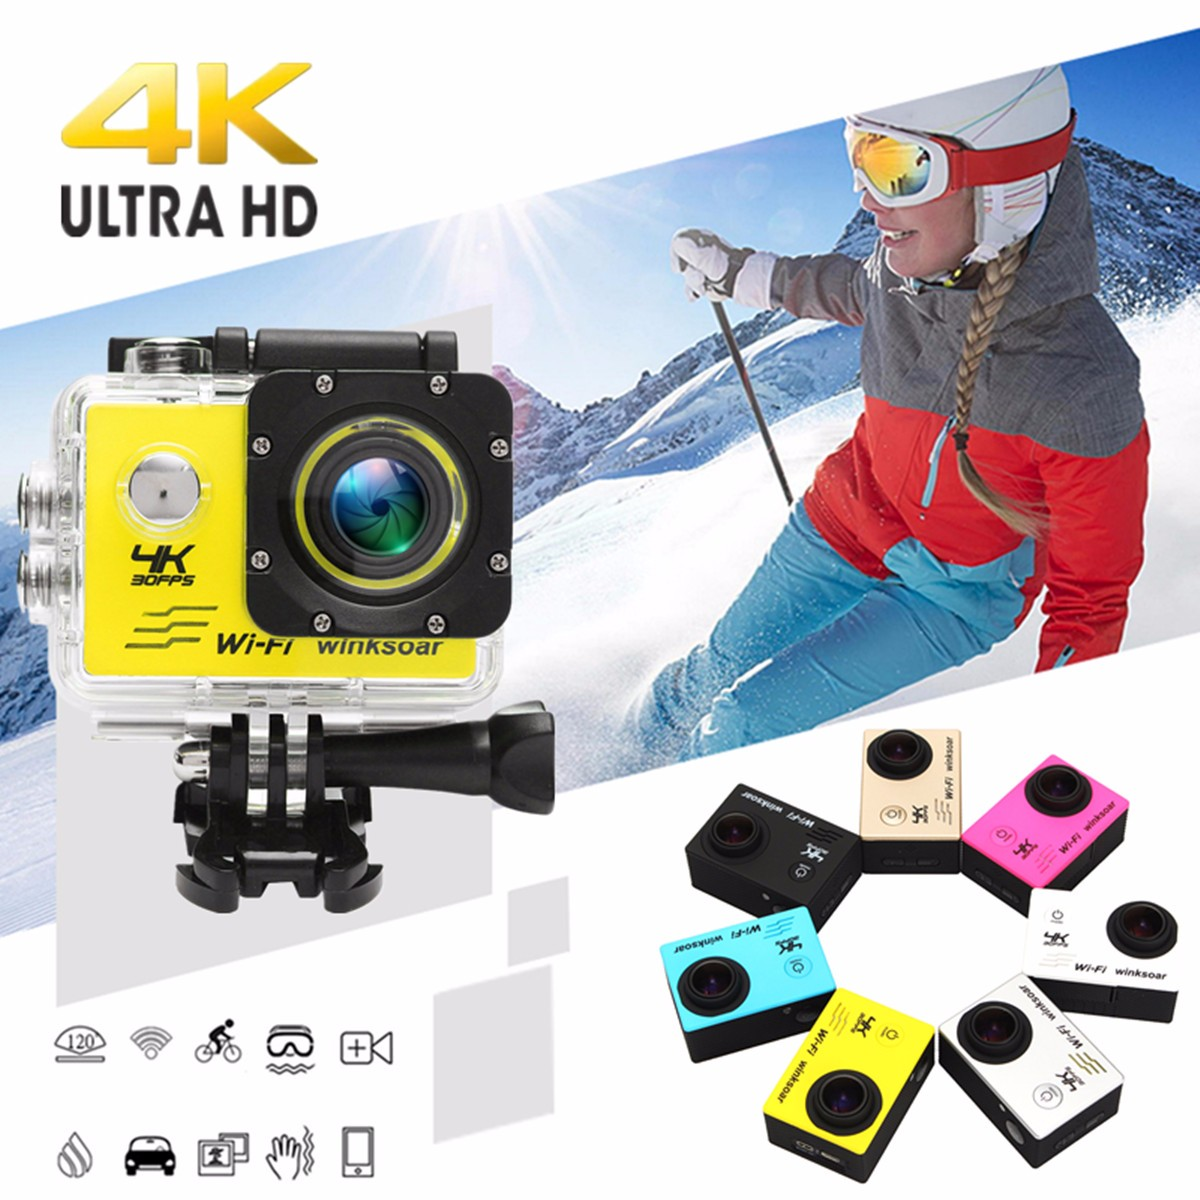 Winksoar SJ9000 Wifi 1080P 4K Ultra HD Sport Action Camera 7 Colors DVR Cam Camcorder Waterproof Christmas Birthday Gift